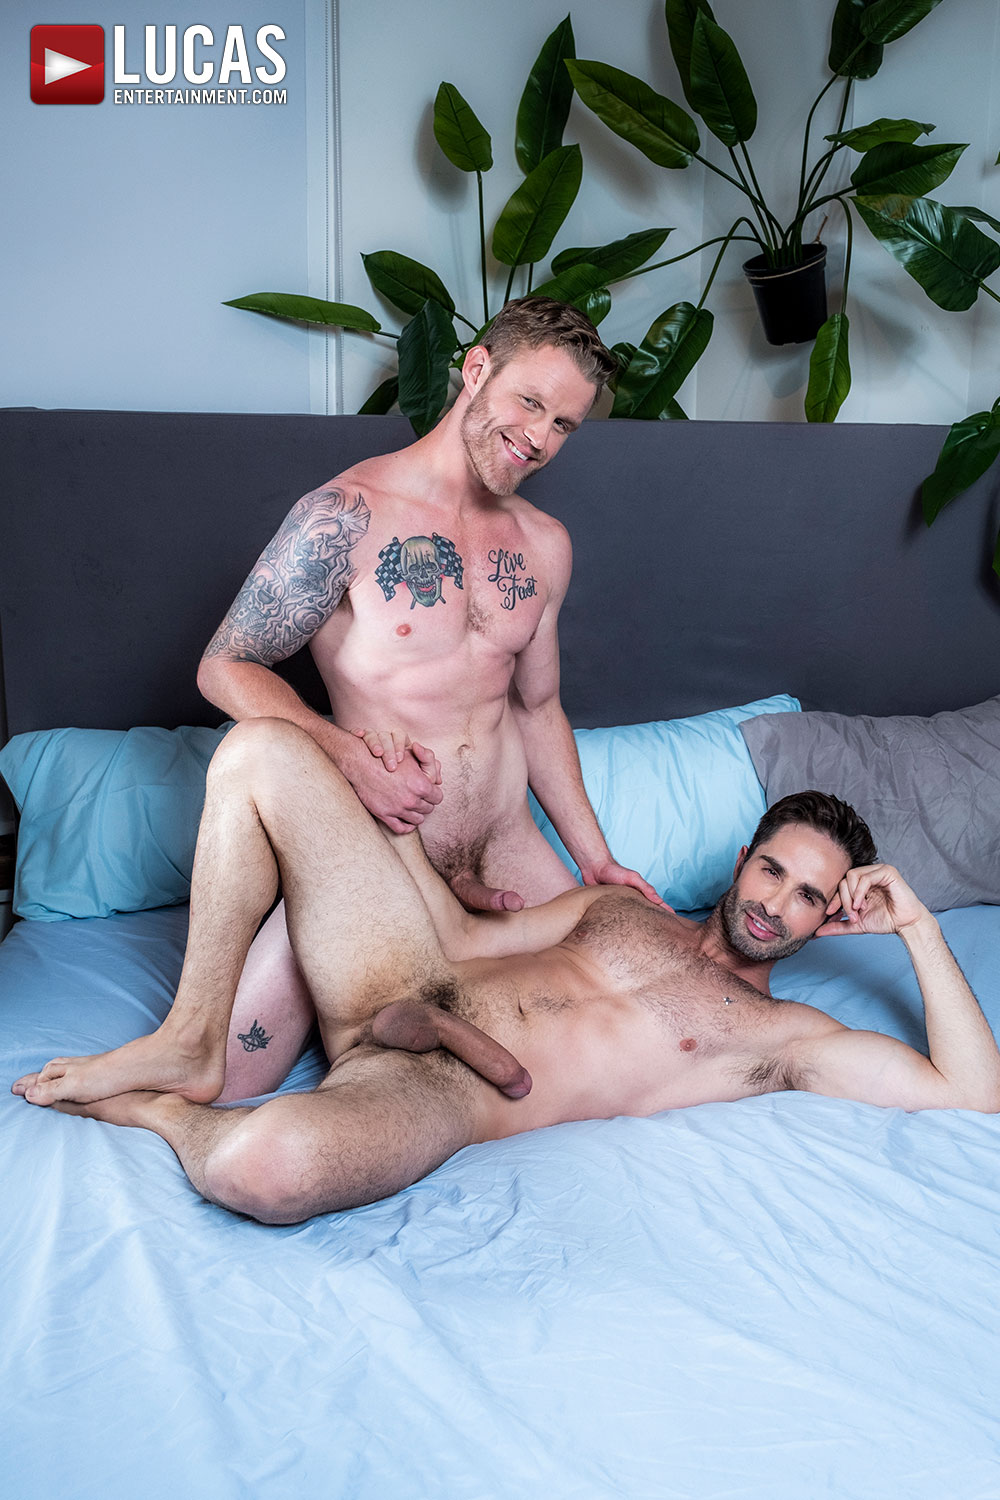 Michael Lucas Tops Shawn Reeve - Gay Movies - Lucas Entertainment